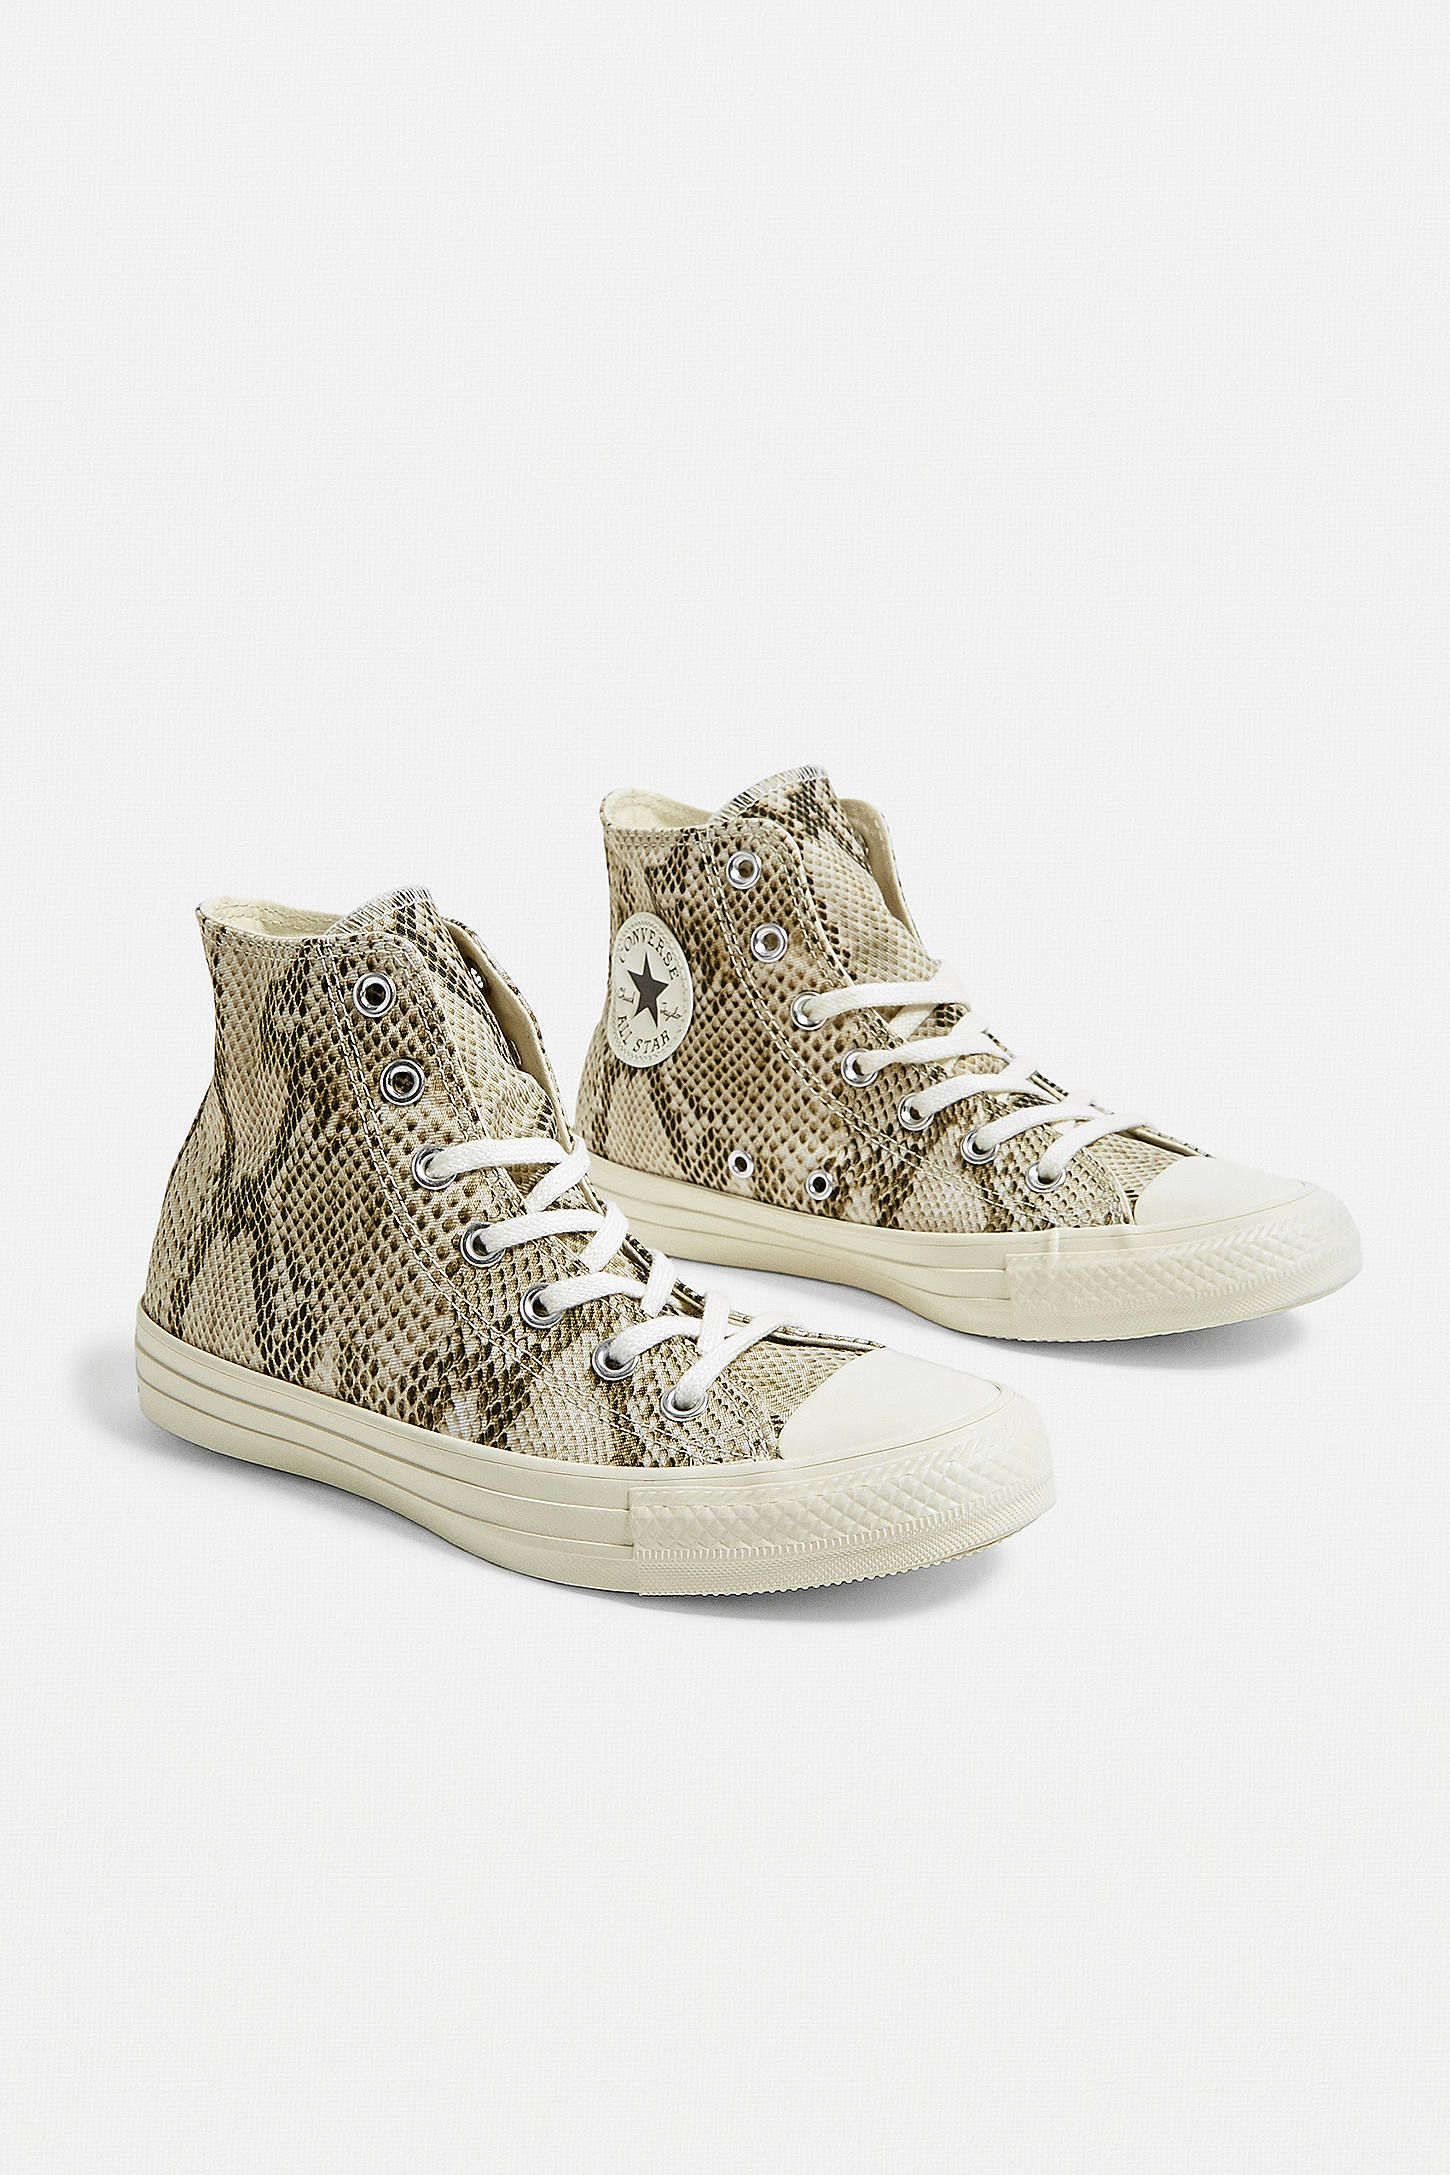 Converse Khaki Chuck Taylor All Star Fashion Snake Leather